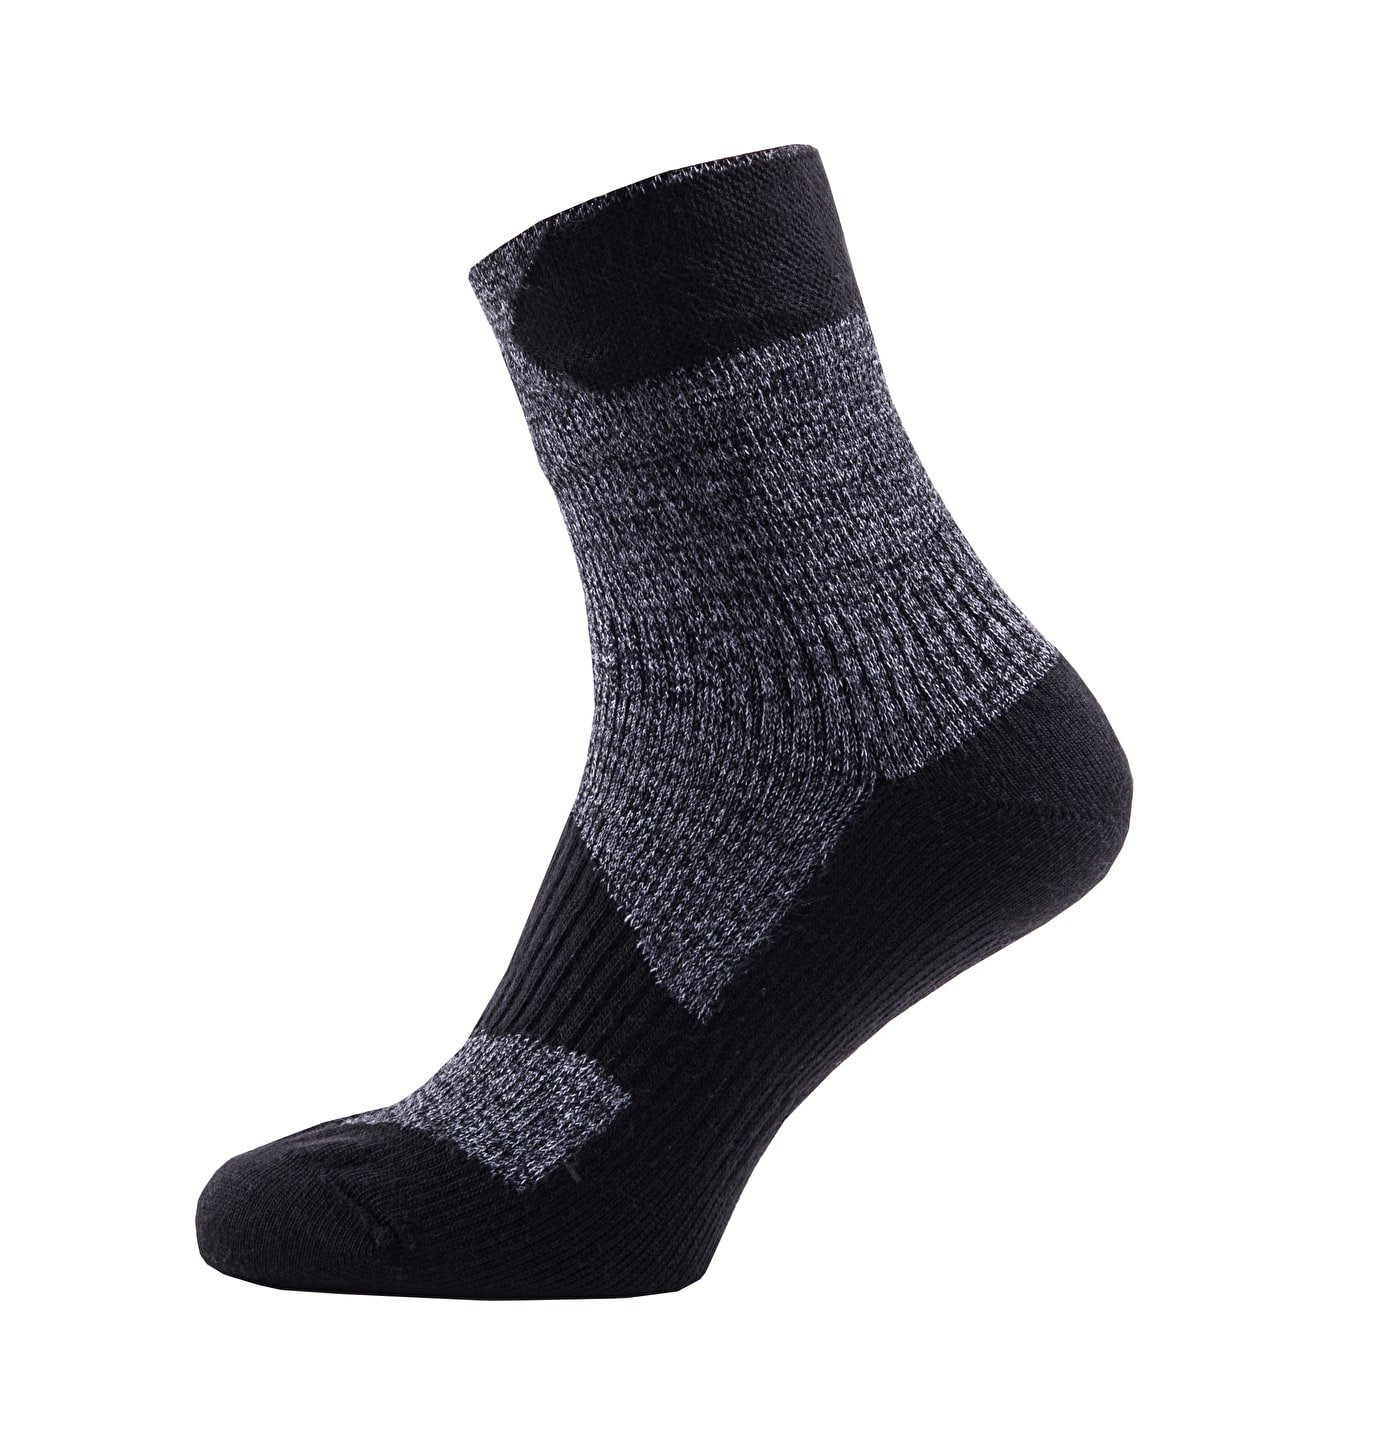 SealSkinz 100% Waterproof Sock - Windproof & Breathable - Ankle length sock, suitable for walking, camping, hiking in All Weather conditions Seal Skinz